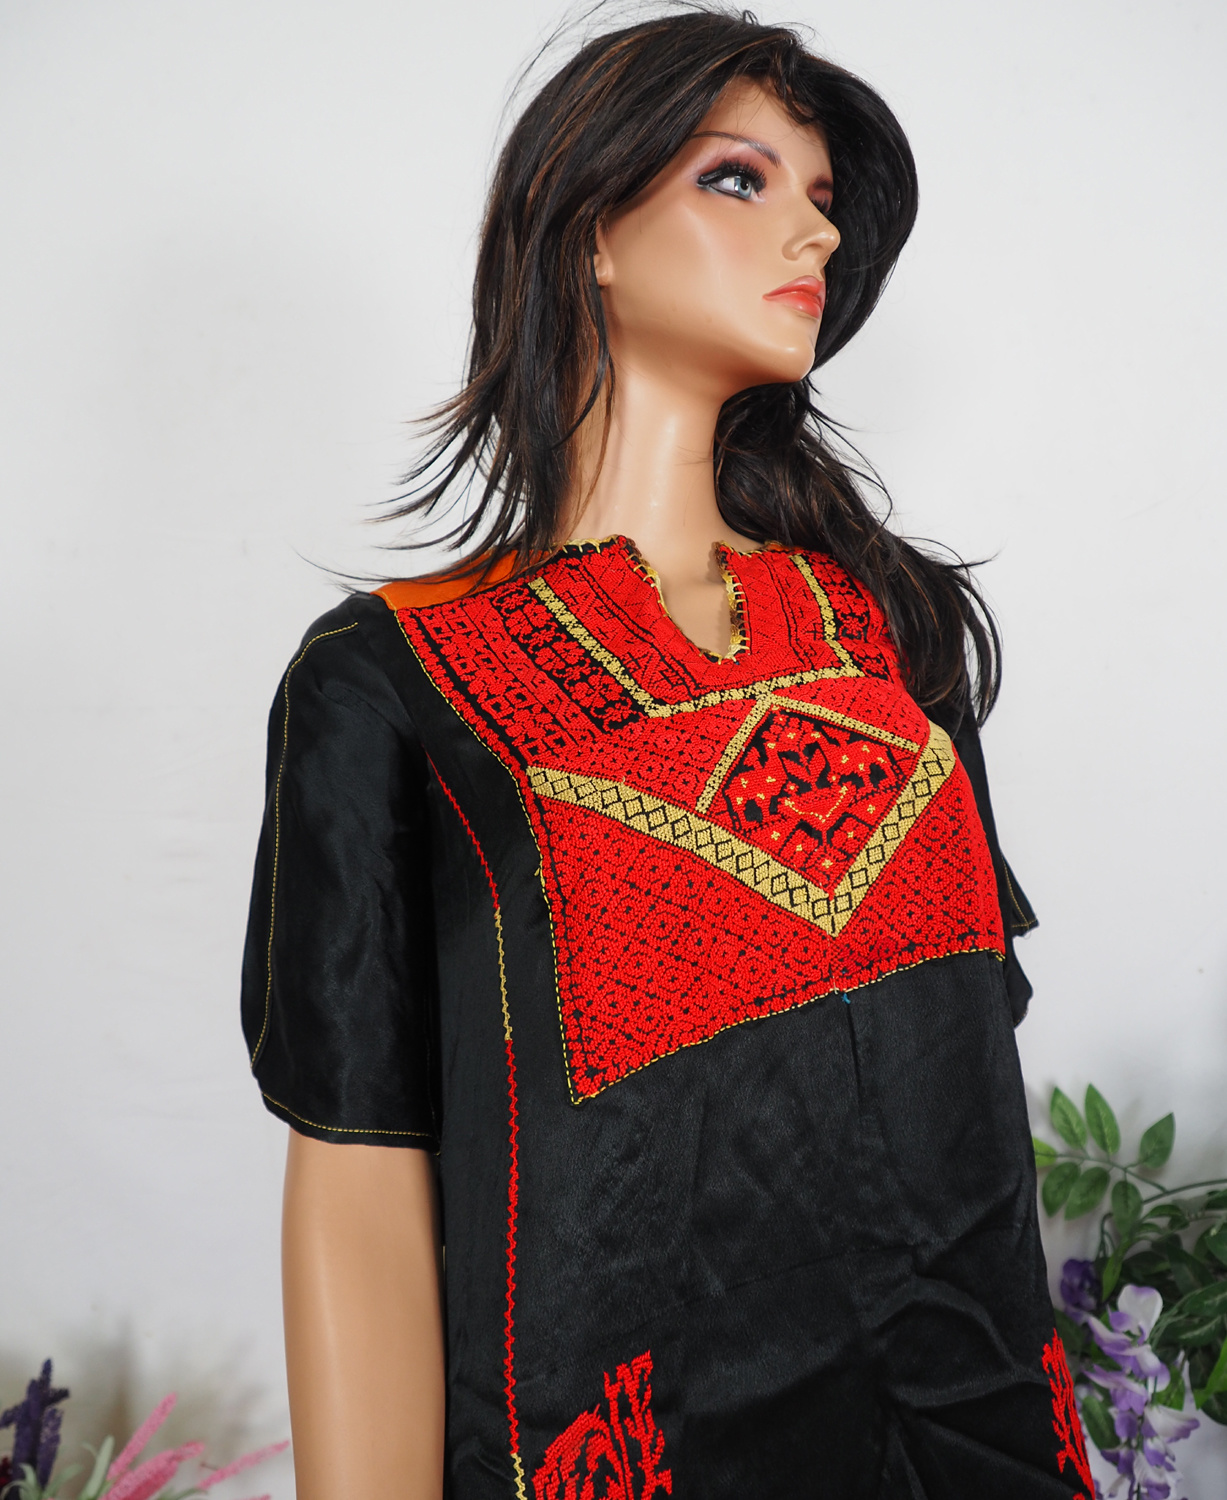 Palestinian girls embroidered ethnic dress No:12